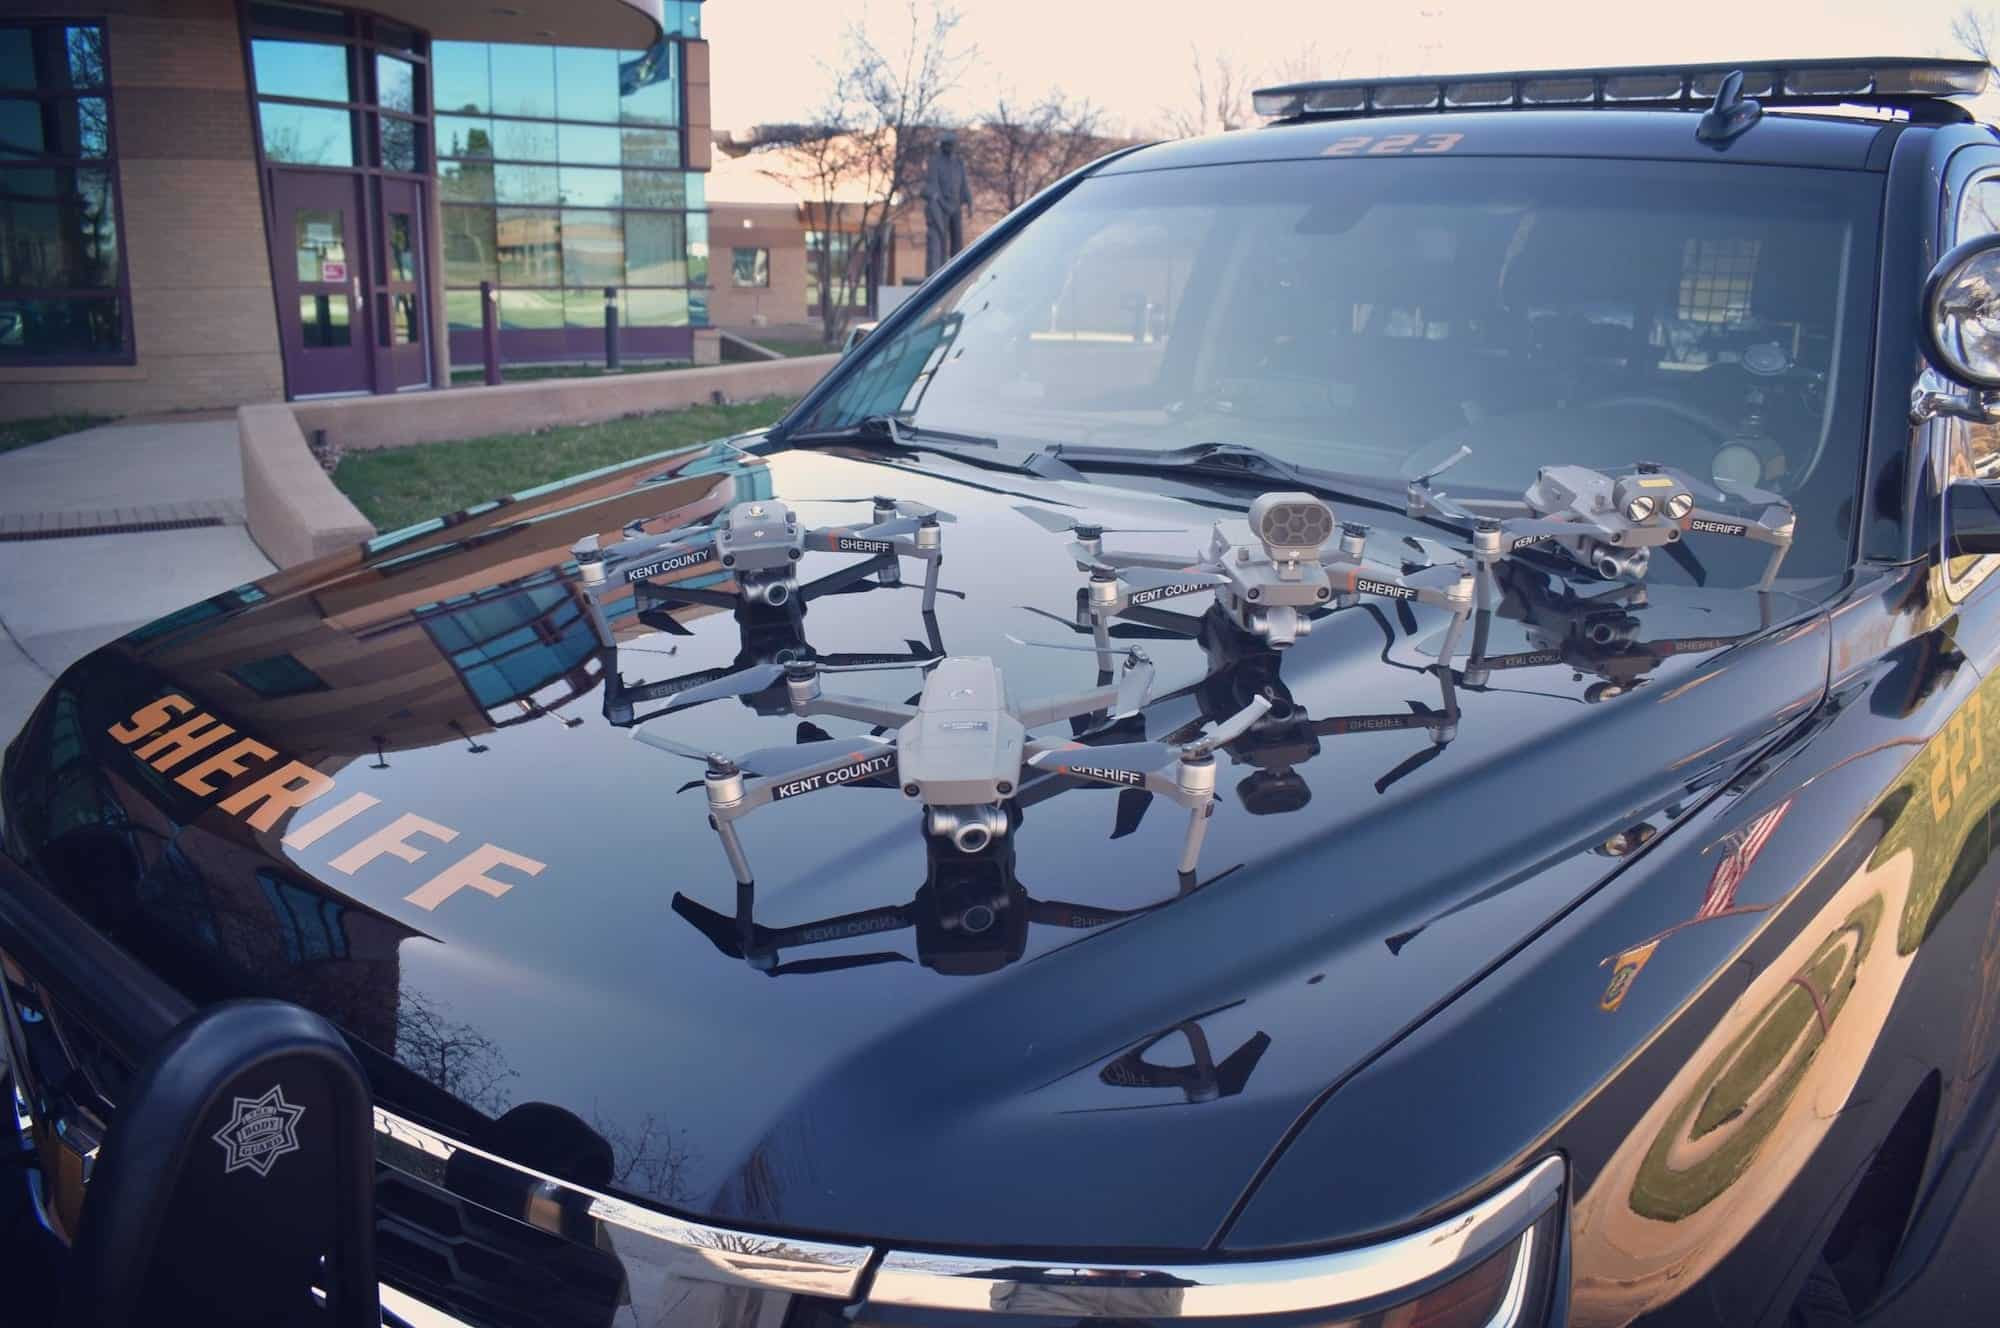 DHS wants to know what you think about using drones during emergencies